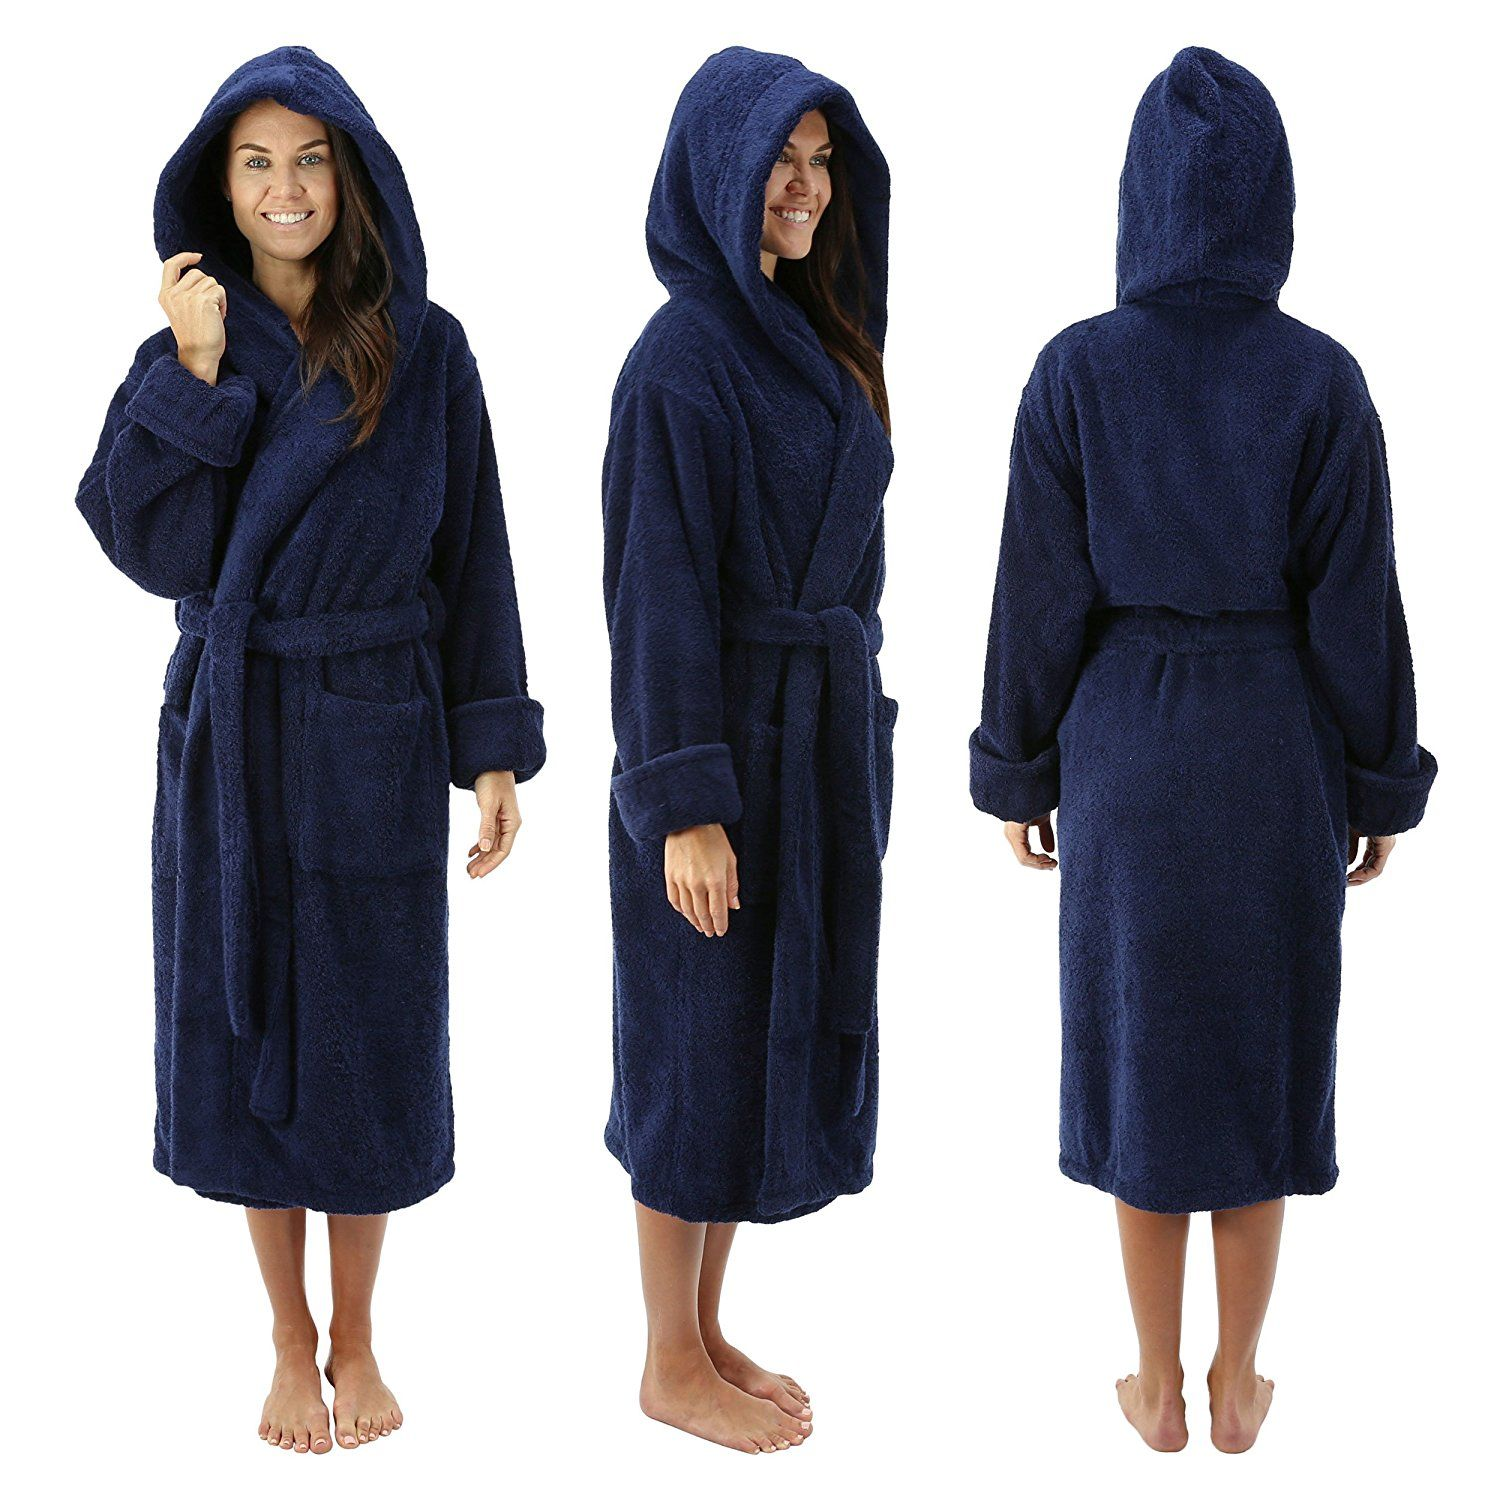 b7722e07ee Comfy Robes Women s Deluxe 20 oz. Turkish Cotton Hooded Bathrobe ...